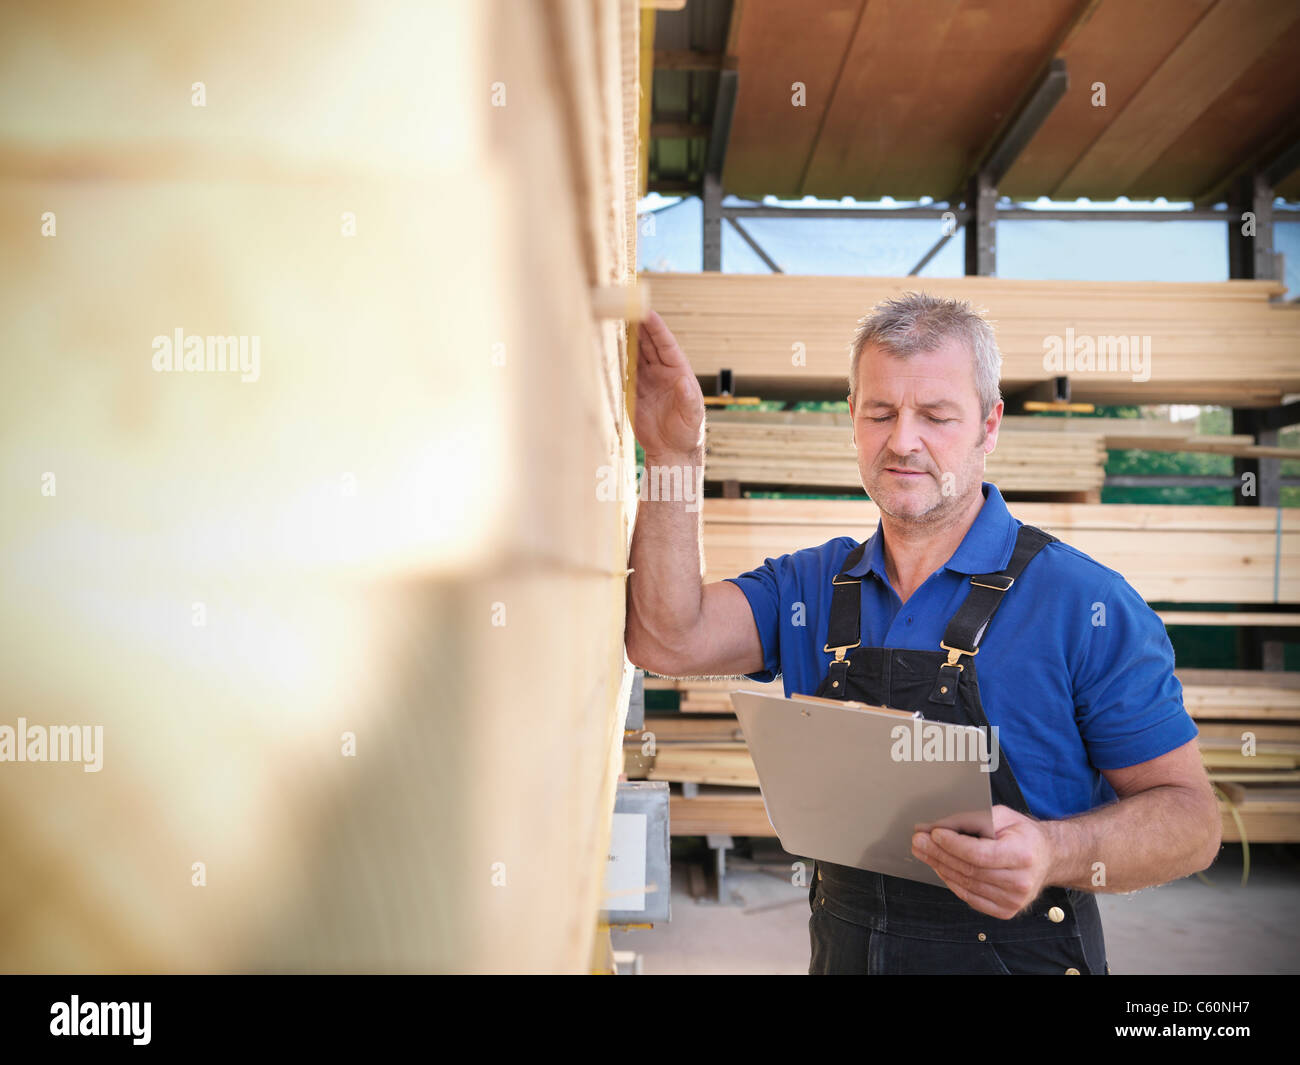 Worker checking wooden planks in joinery - Stock Image